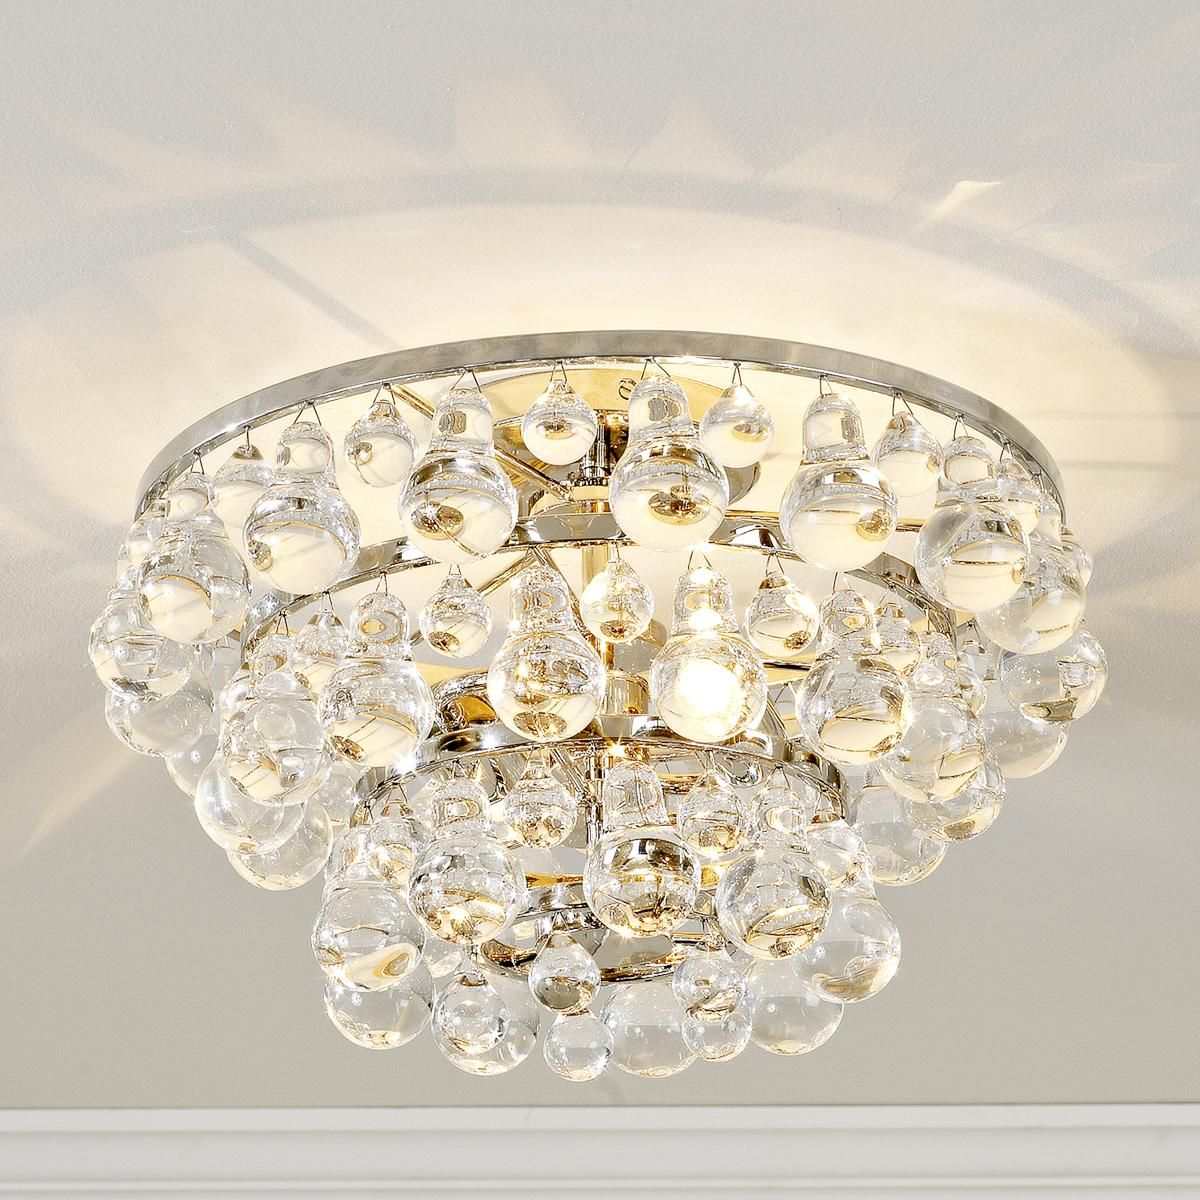 Elegance & Glamour! Pear shaped crystal balls with polished nickel.